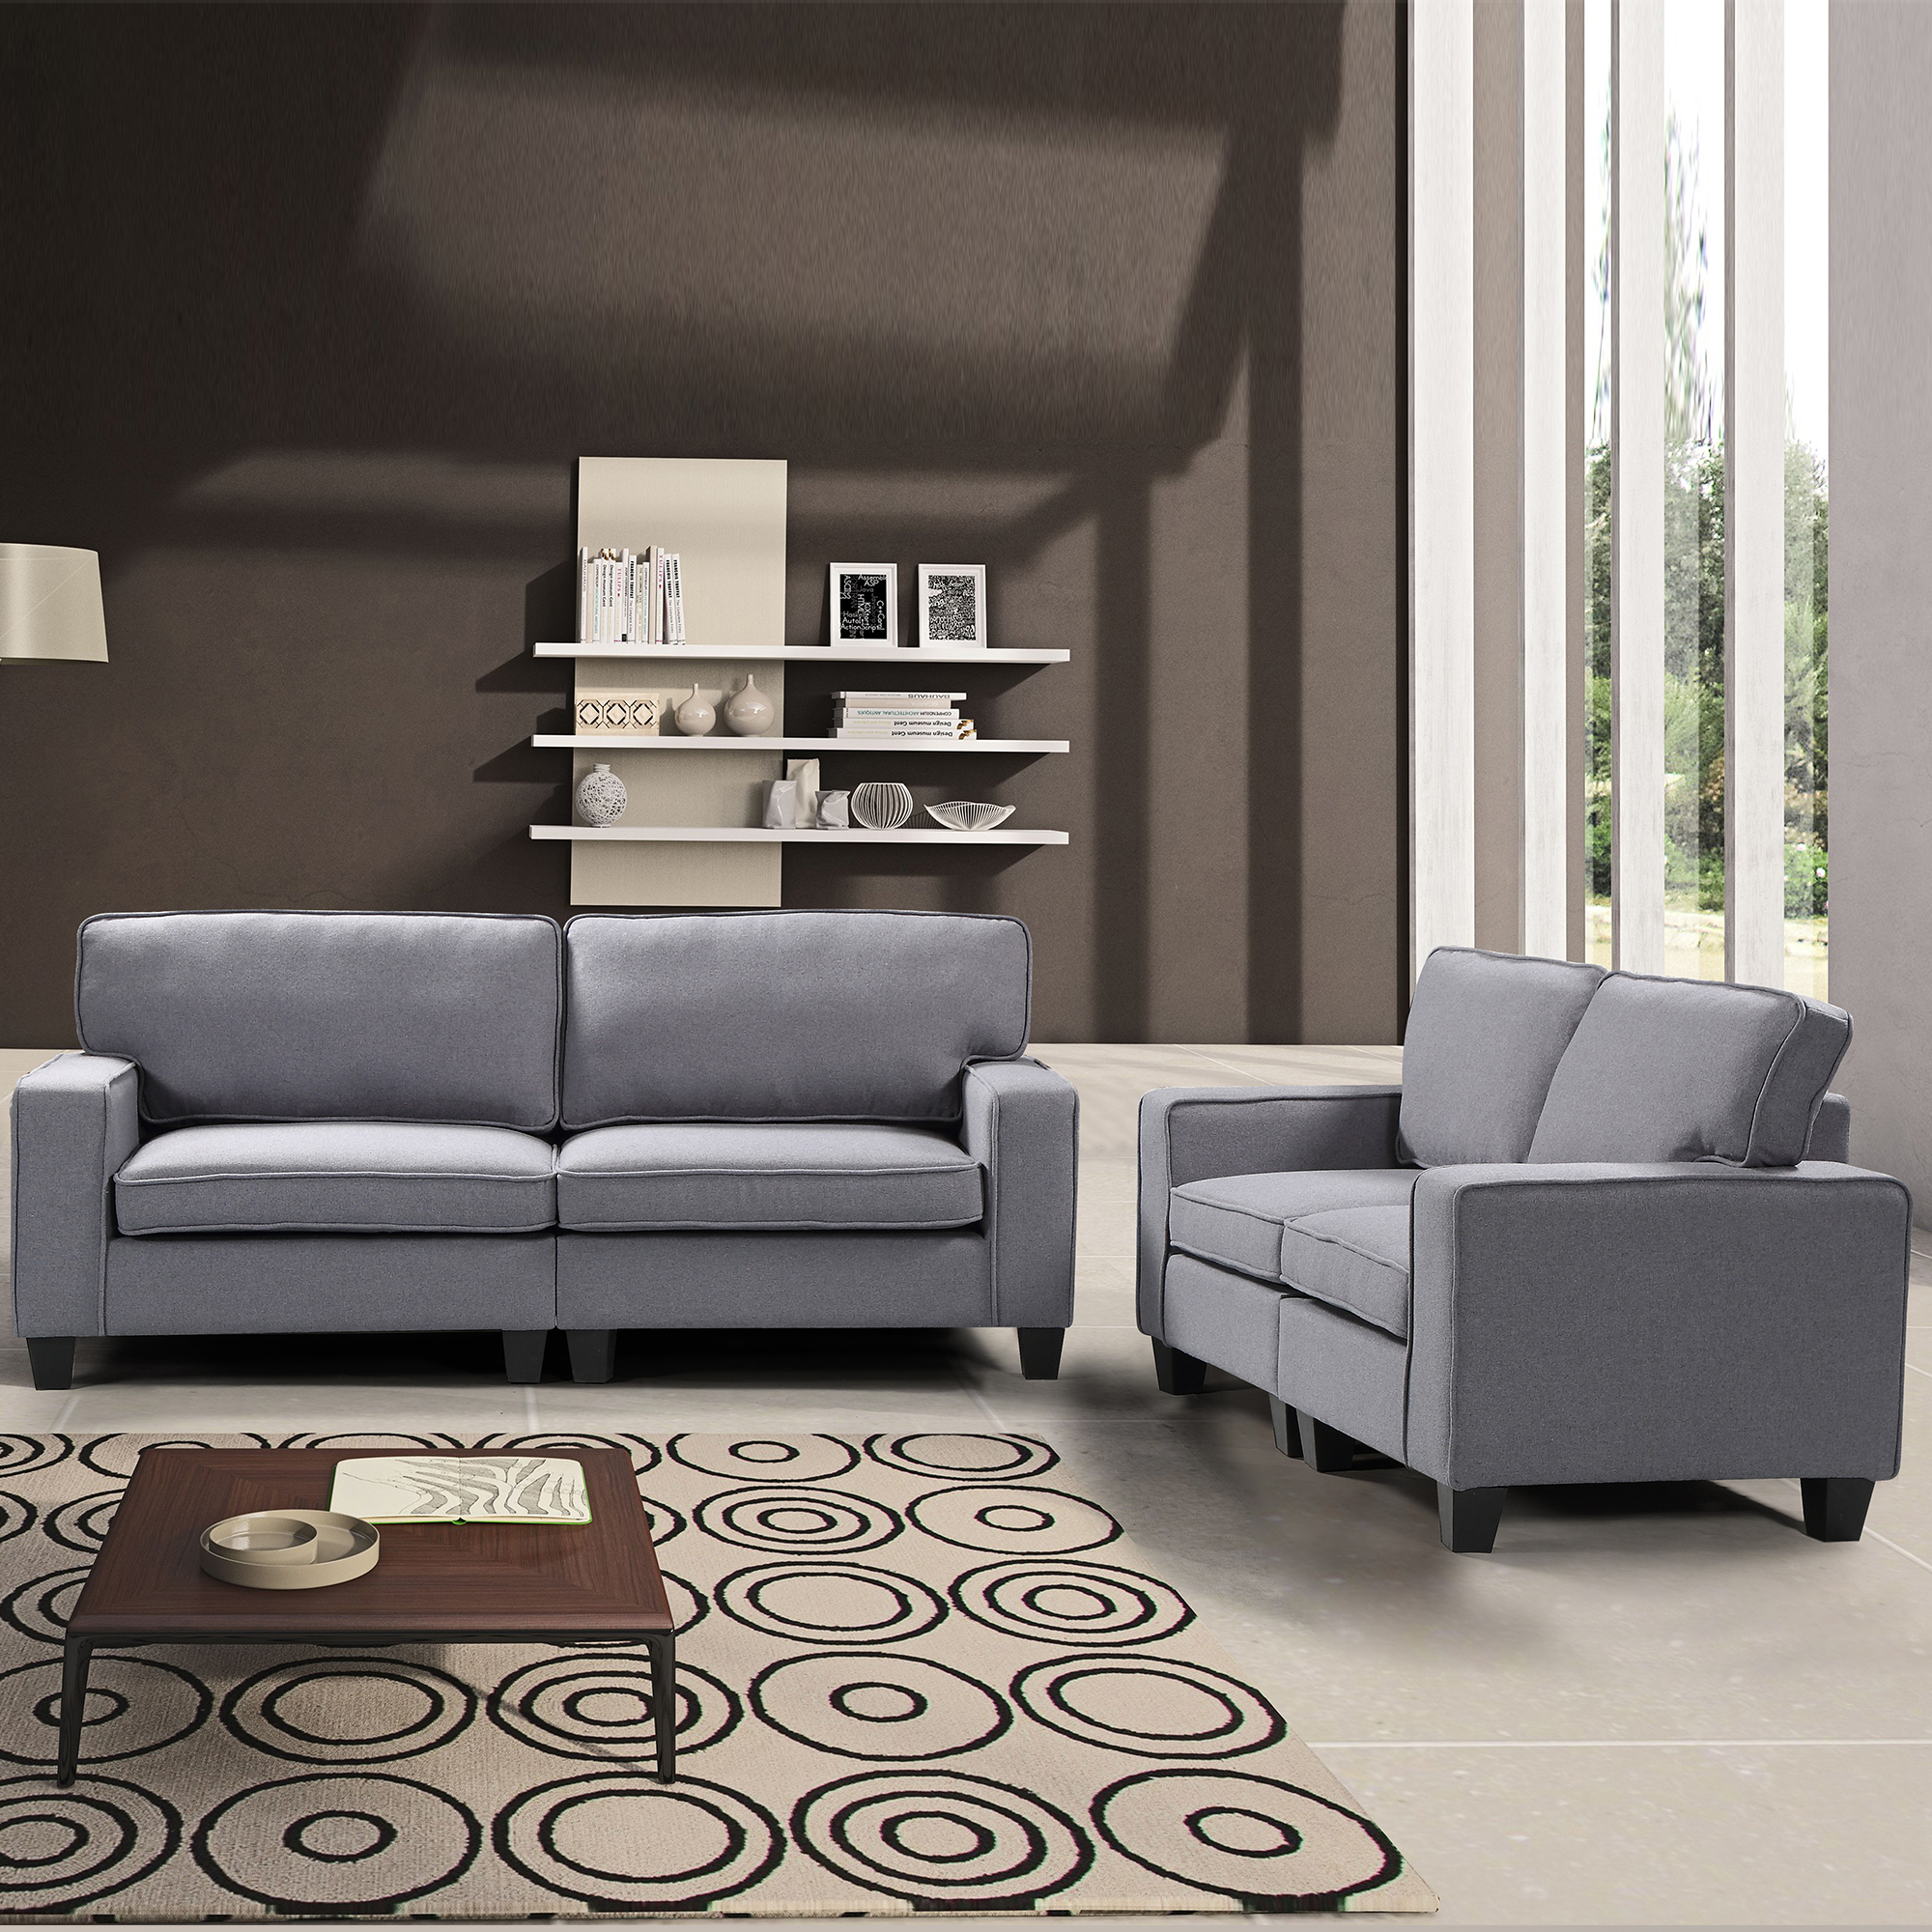 Harper&Bright Designs 2 Piece Living Room Upholstered Sofa and Loveseat Set , Multiple Colors